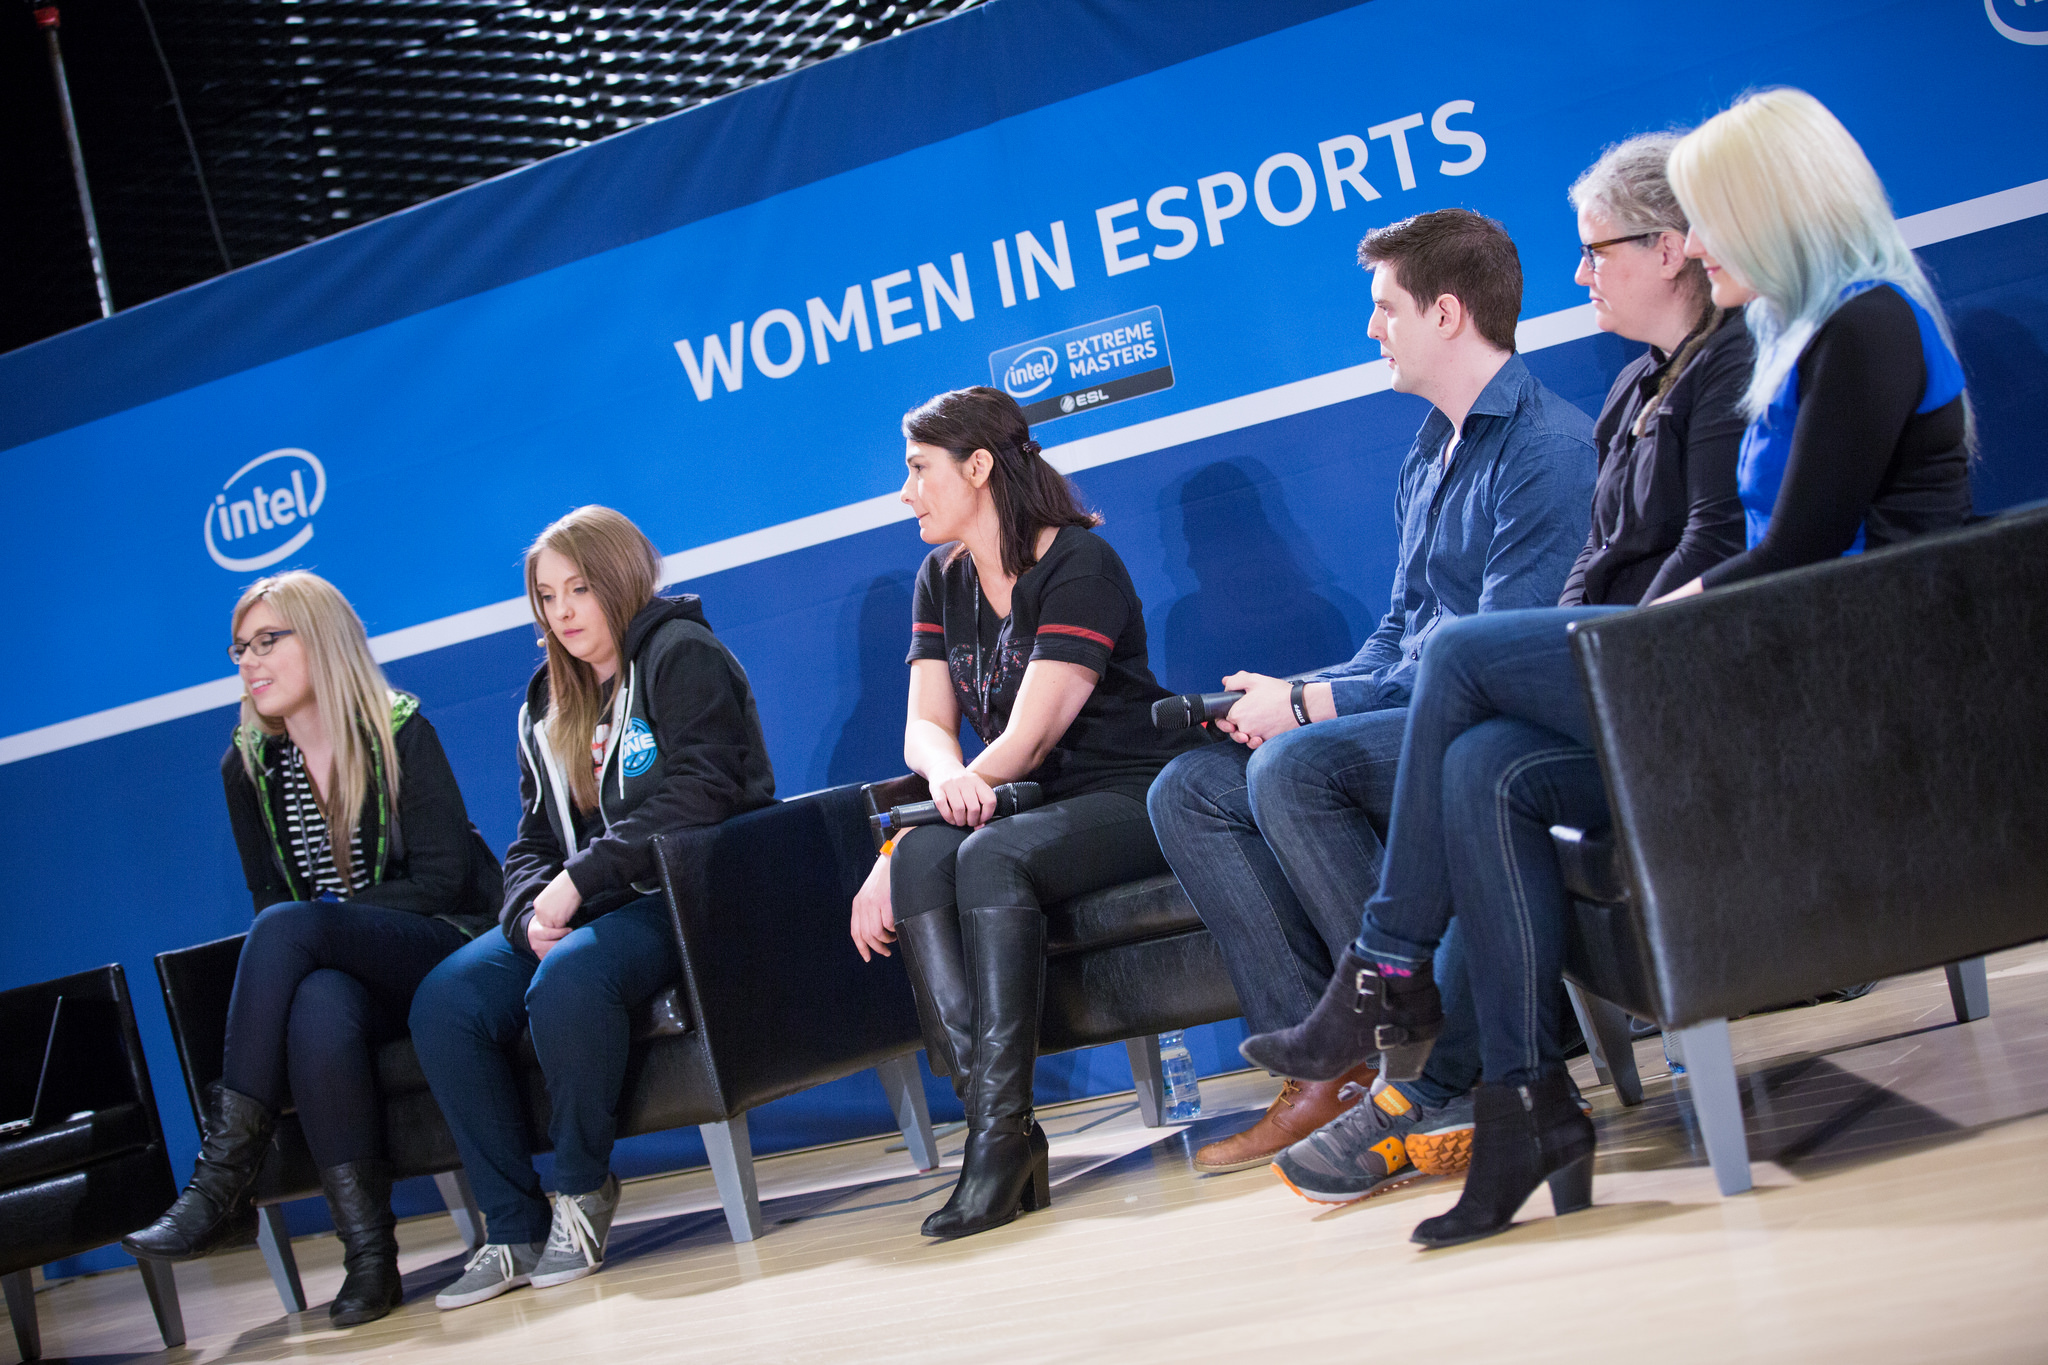 Intel and ESL are promoting women in eSports through new AnyKey diversity program.